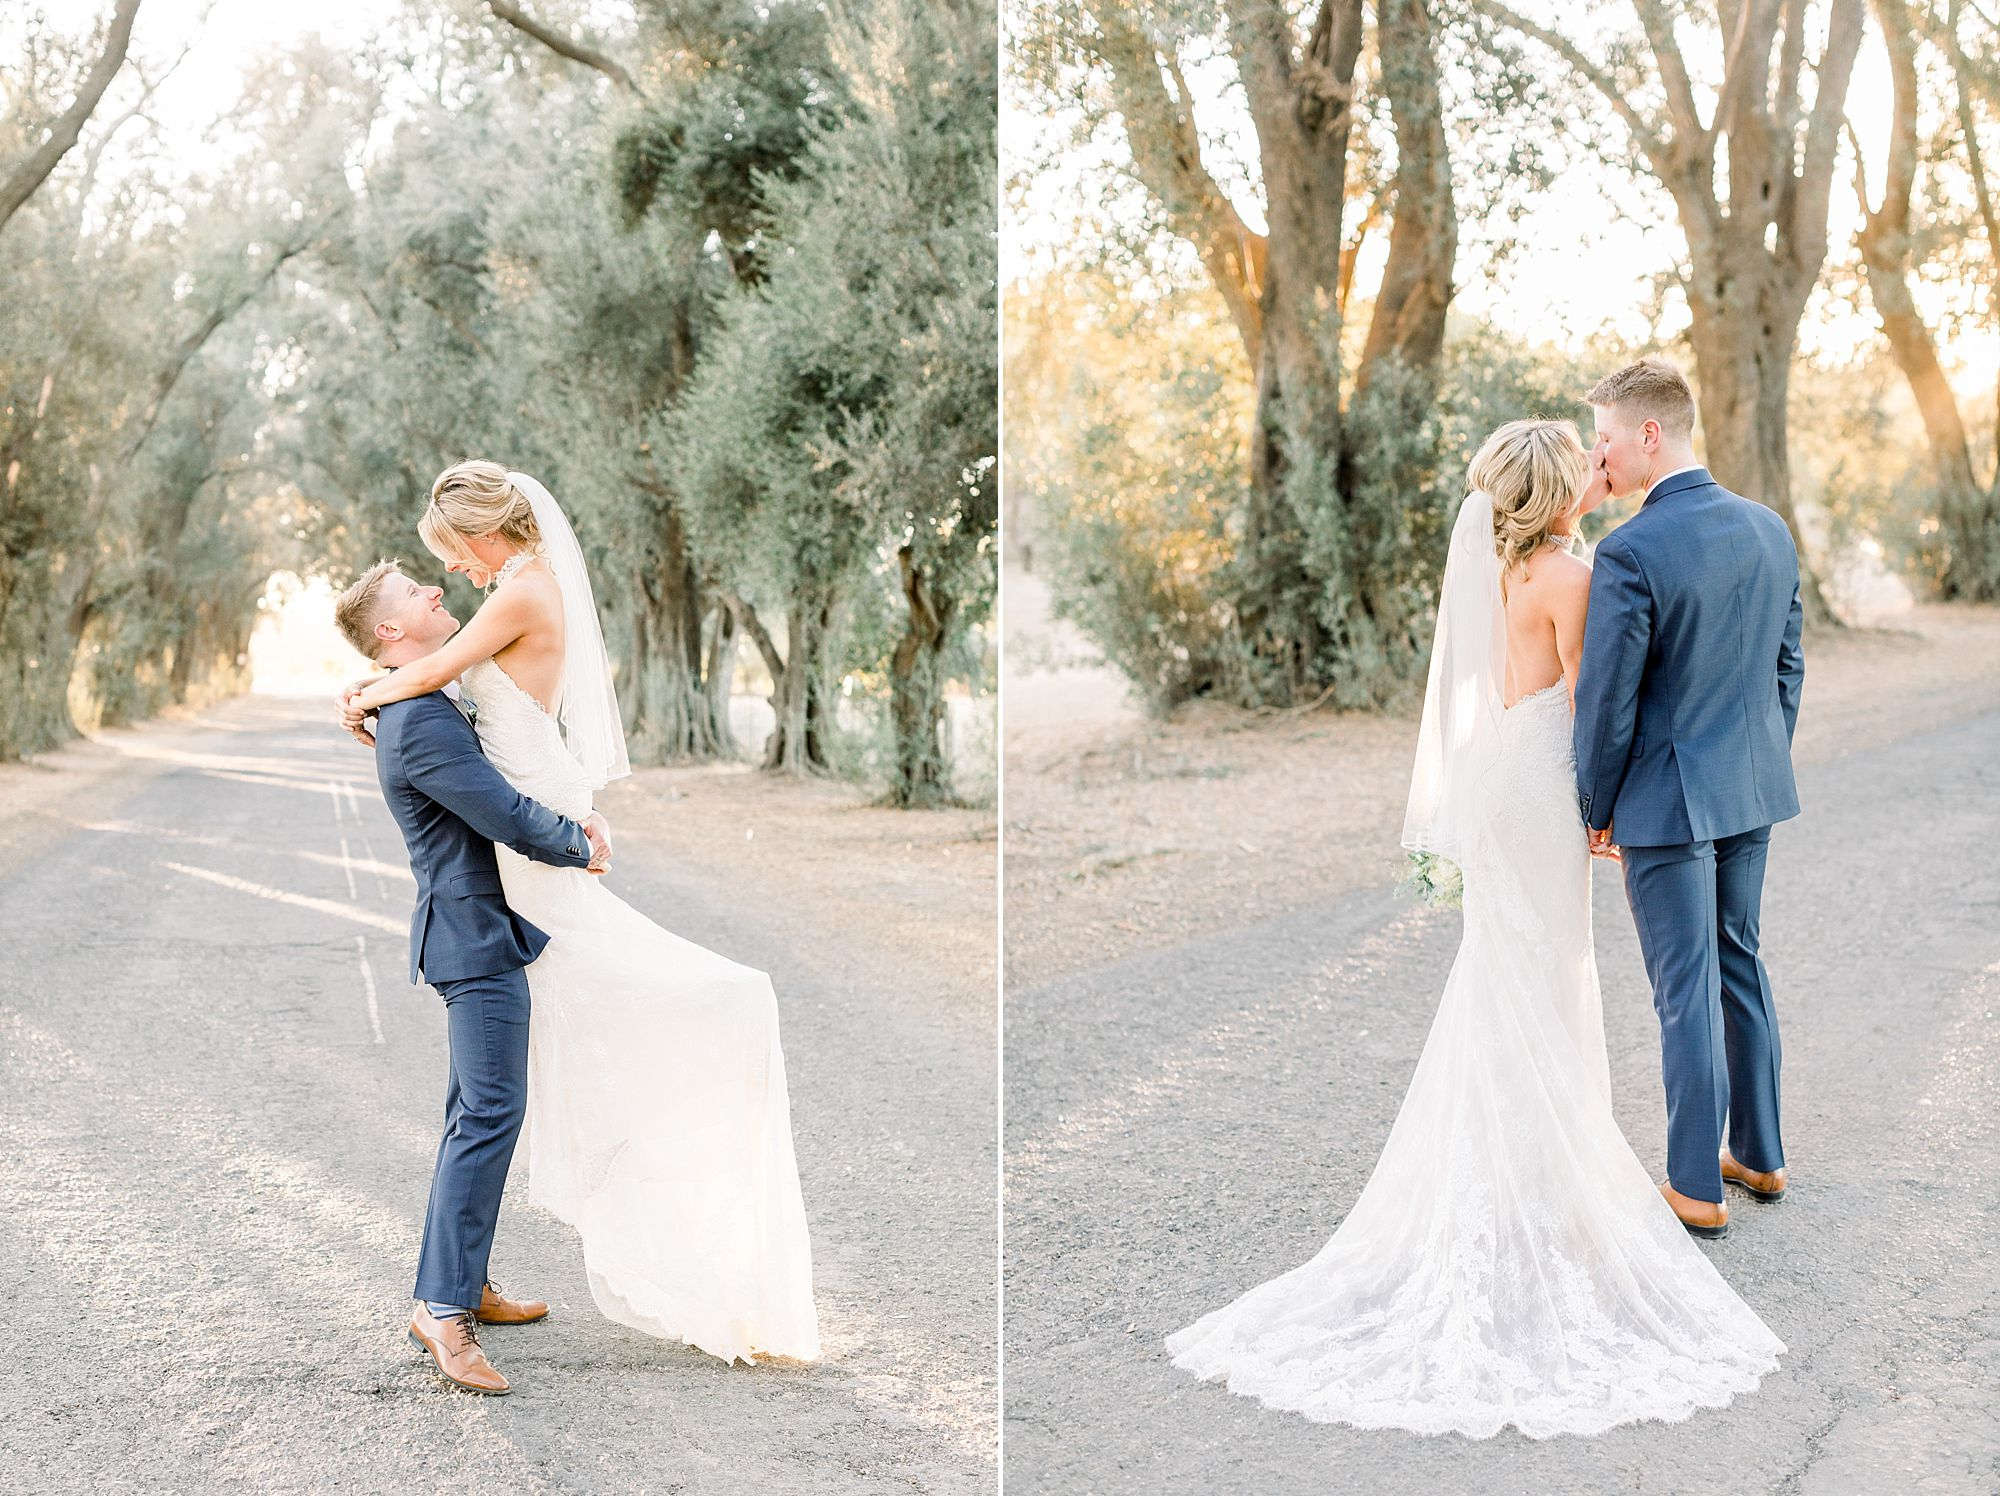 The Maples Wedding in Woodland California - Ashley Baumgartner - Sacramento Wedding Photographer - Sacramento Film Photographer_0050.jpg